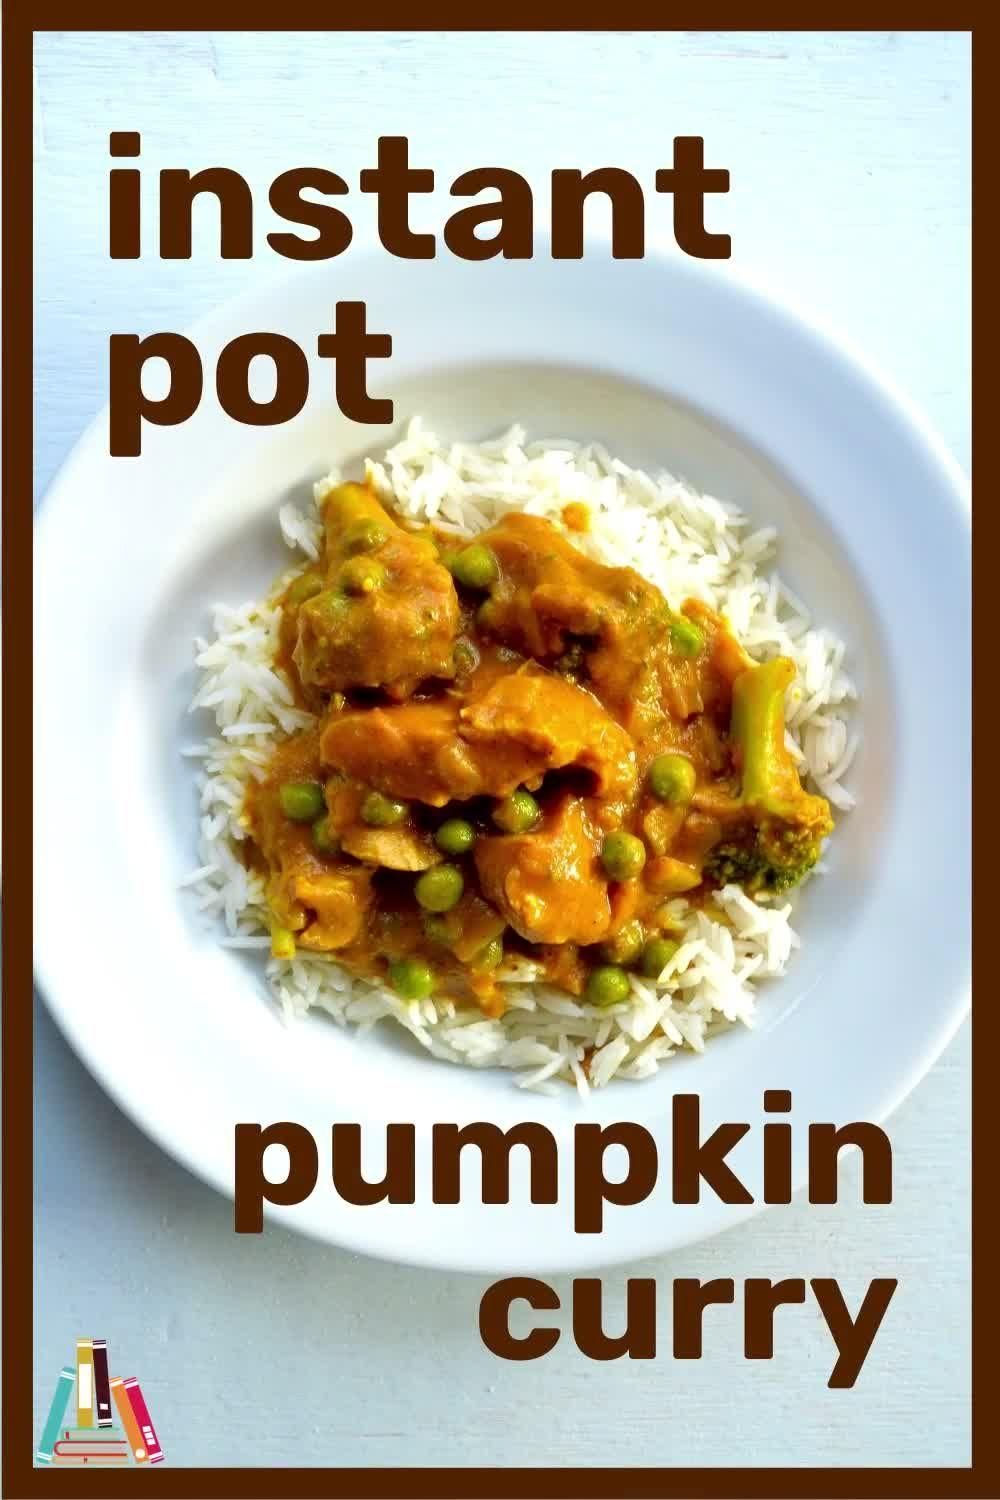 Instant Pot Pumpkin Curry with Chicken